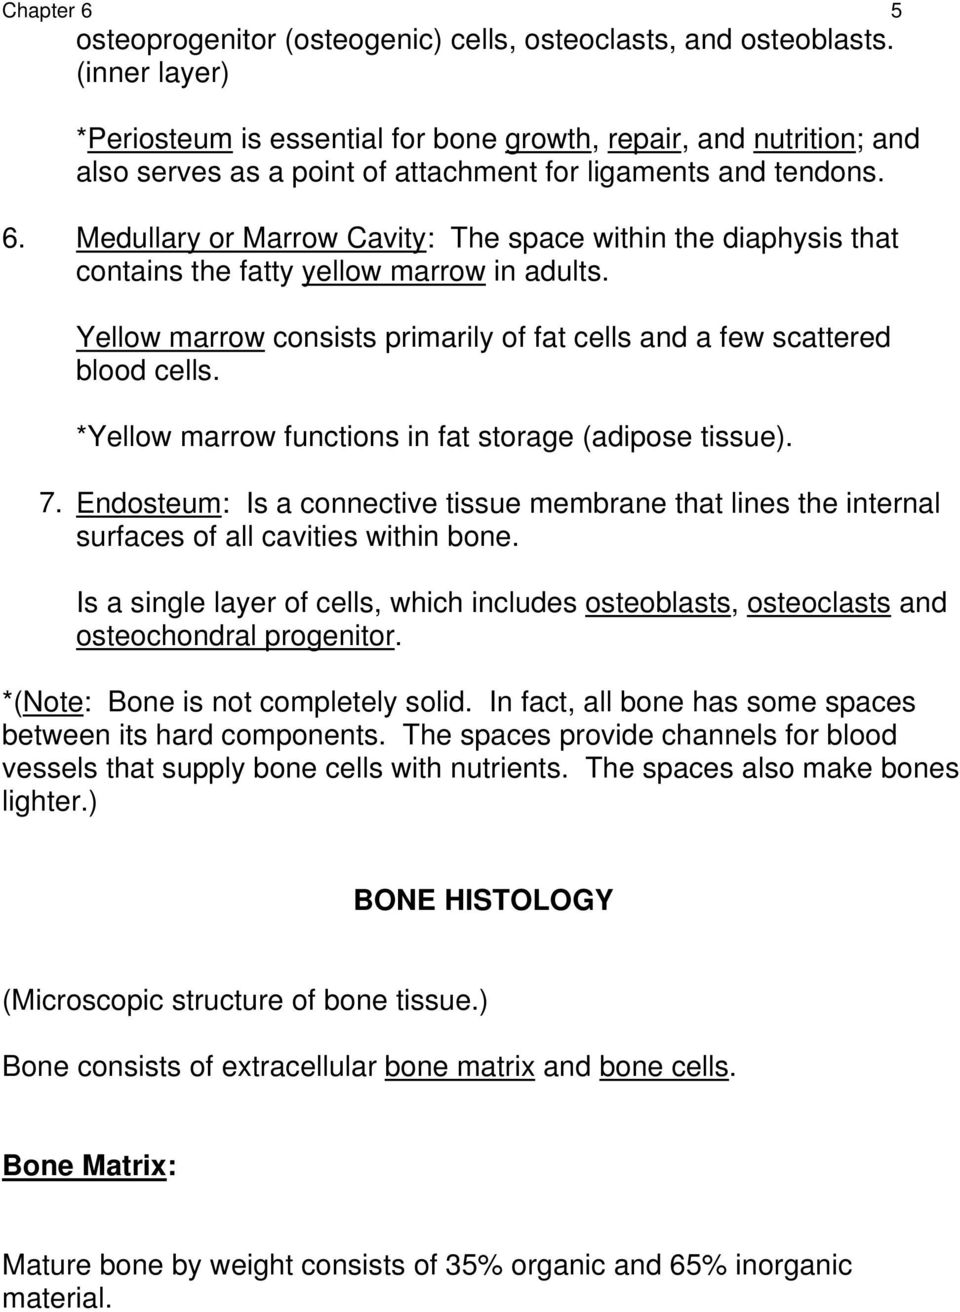 Famoso Anatomy And Physiology Chapter 6 Study Guide Answer Key ...